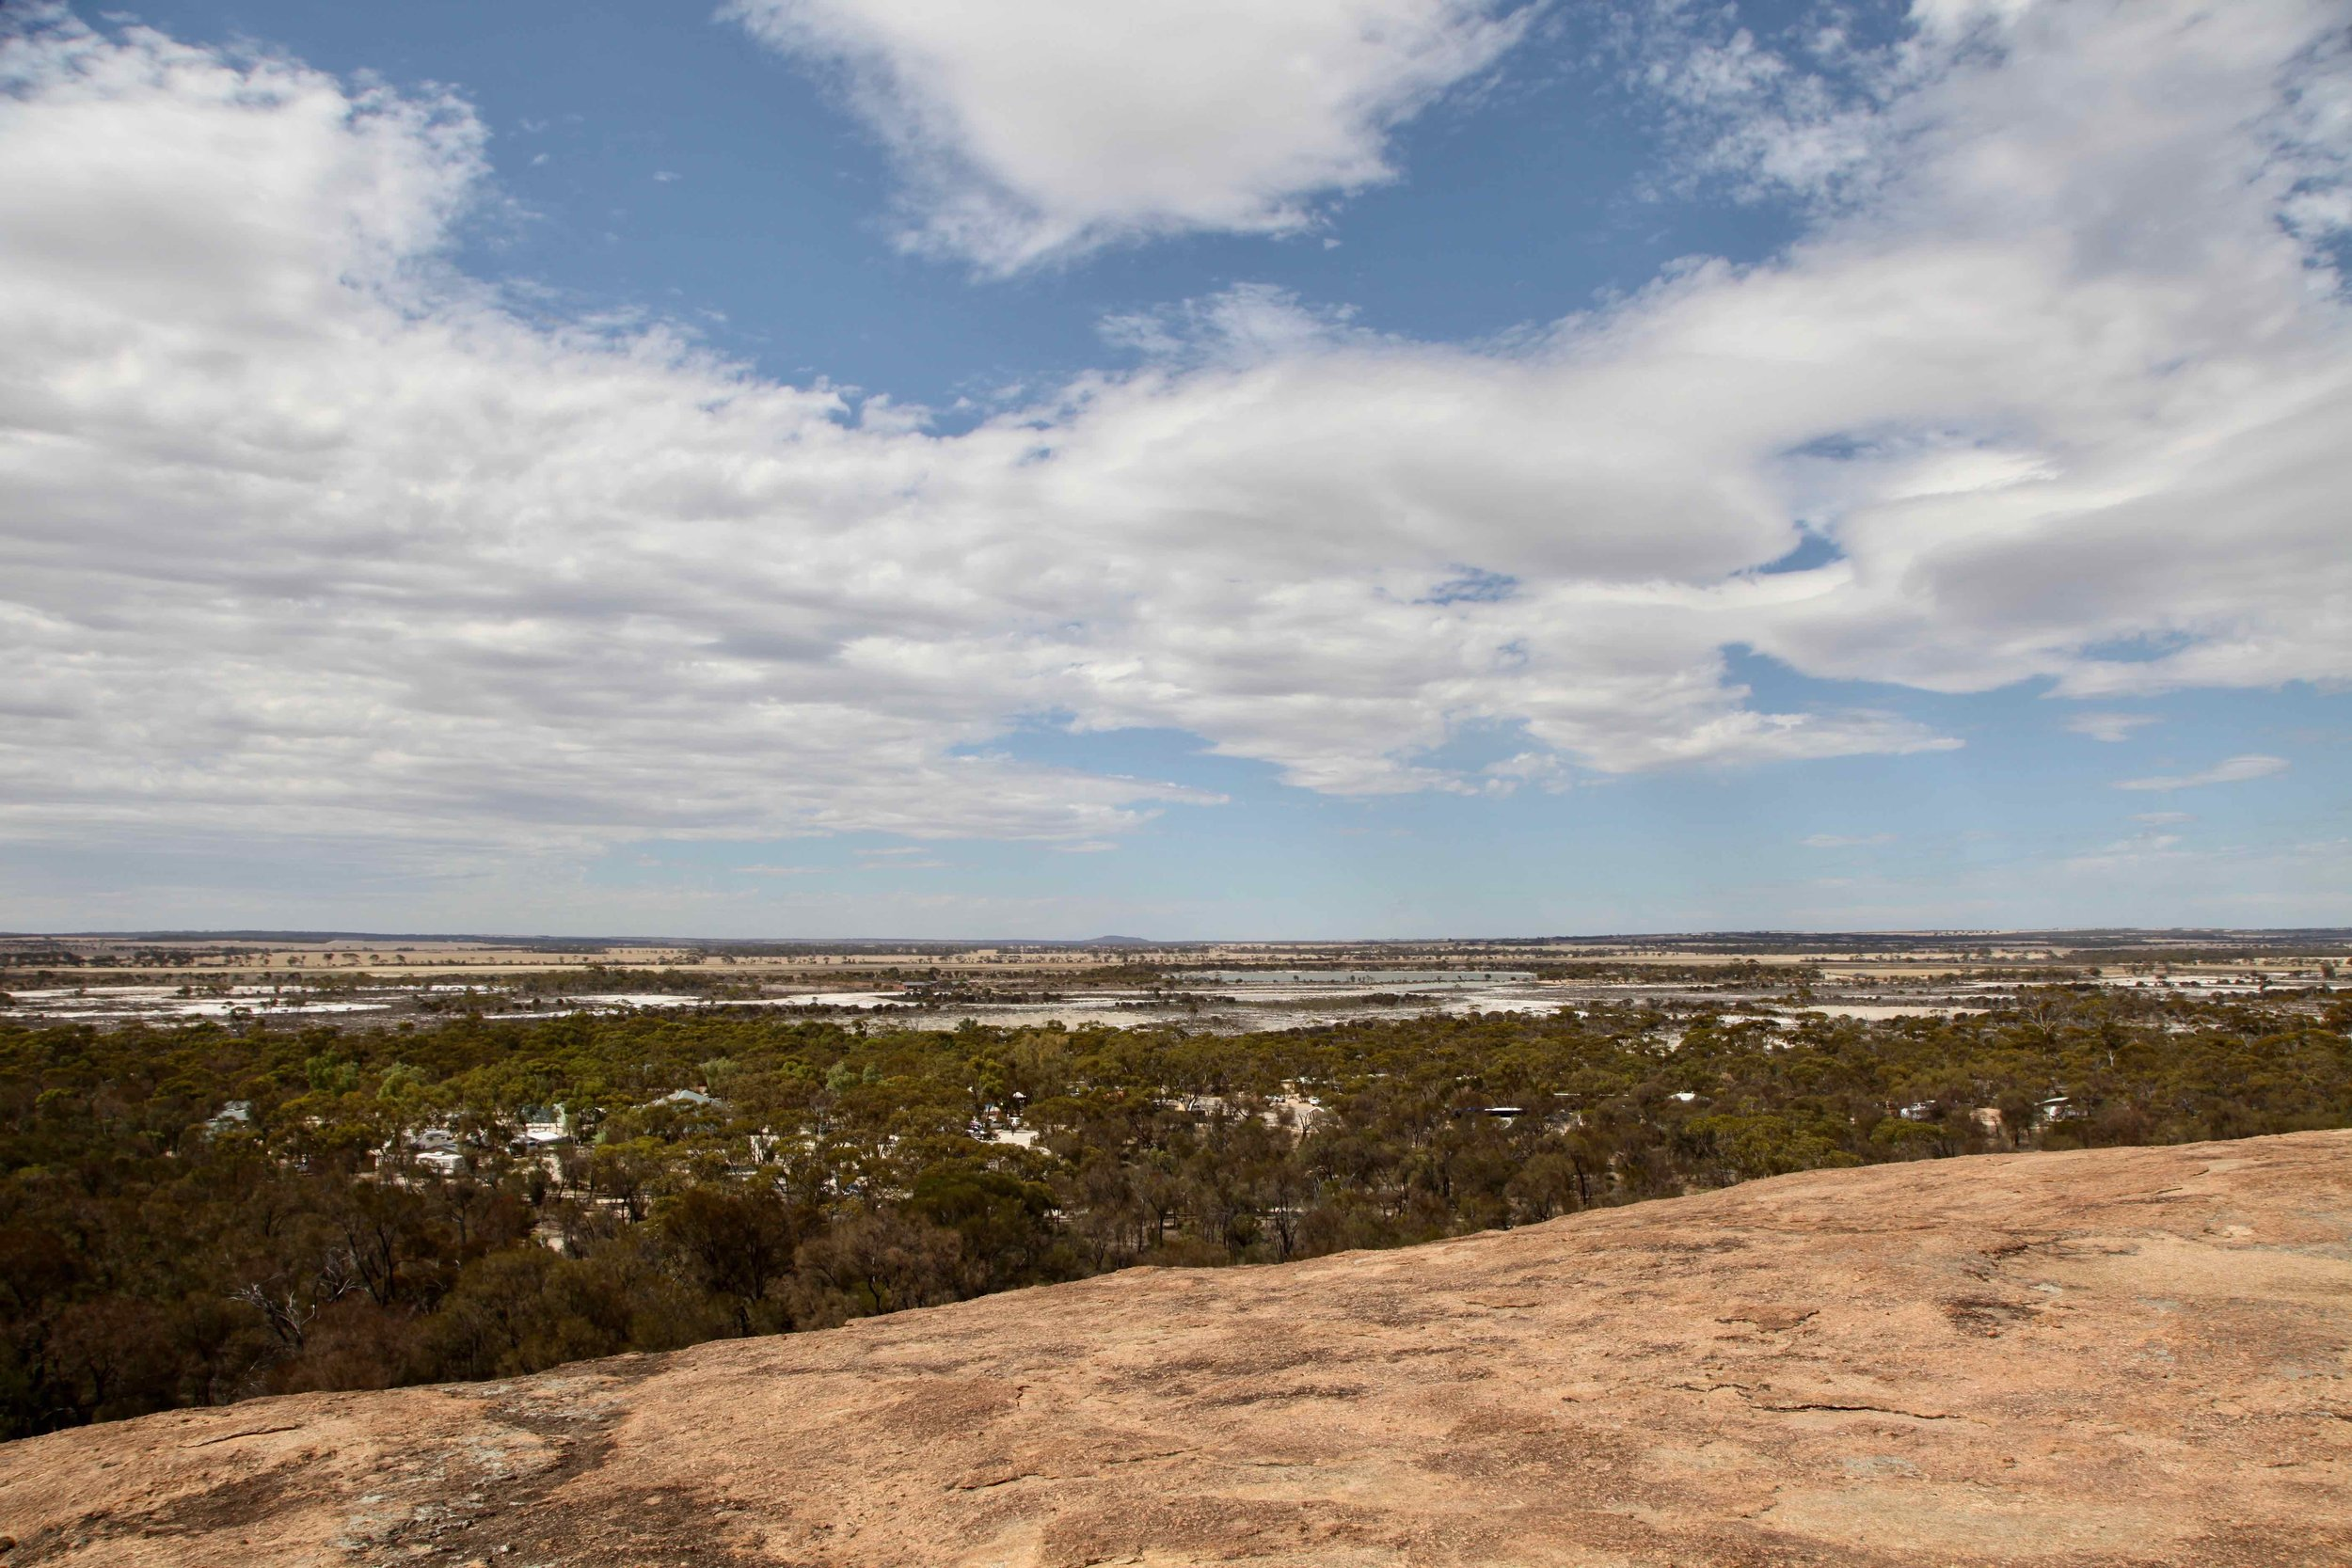 The view from Hyden Rock in Western Australia.